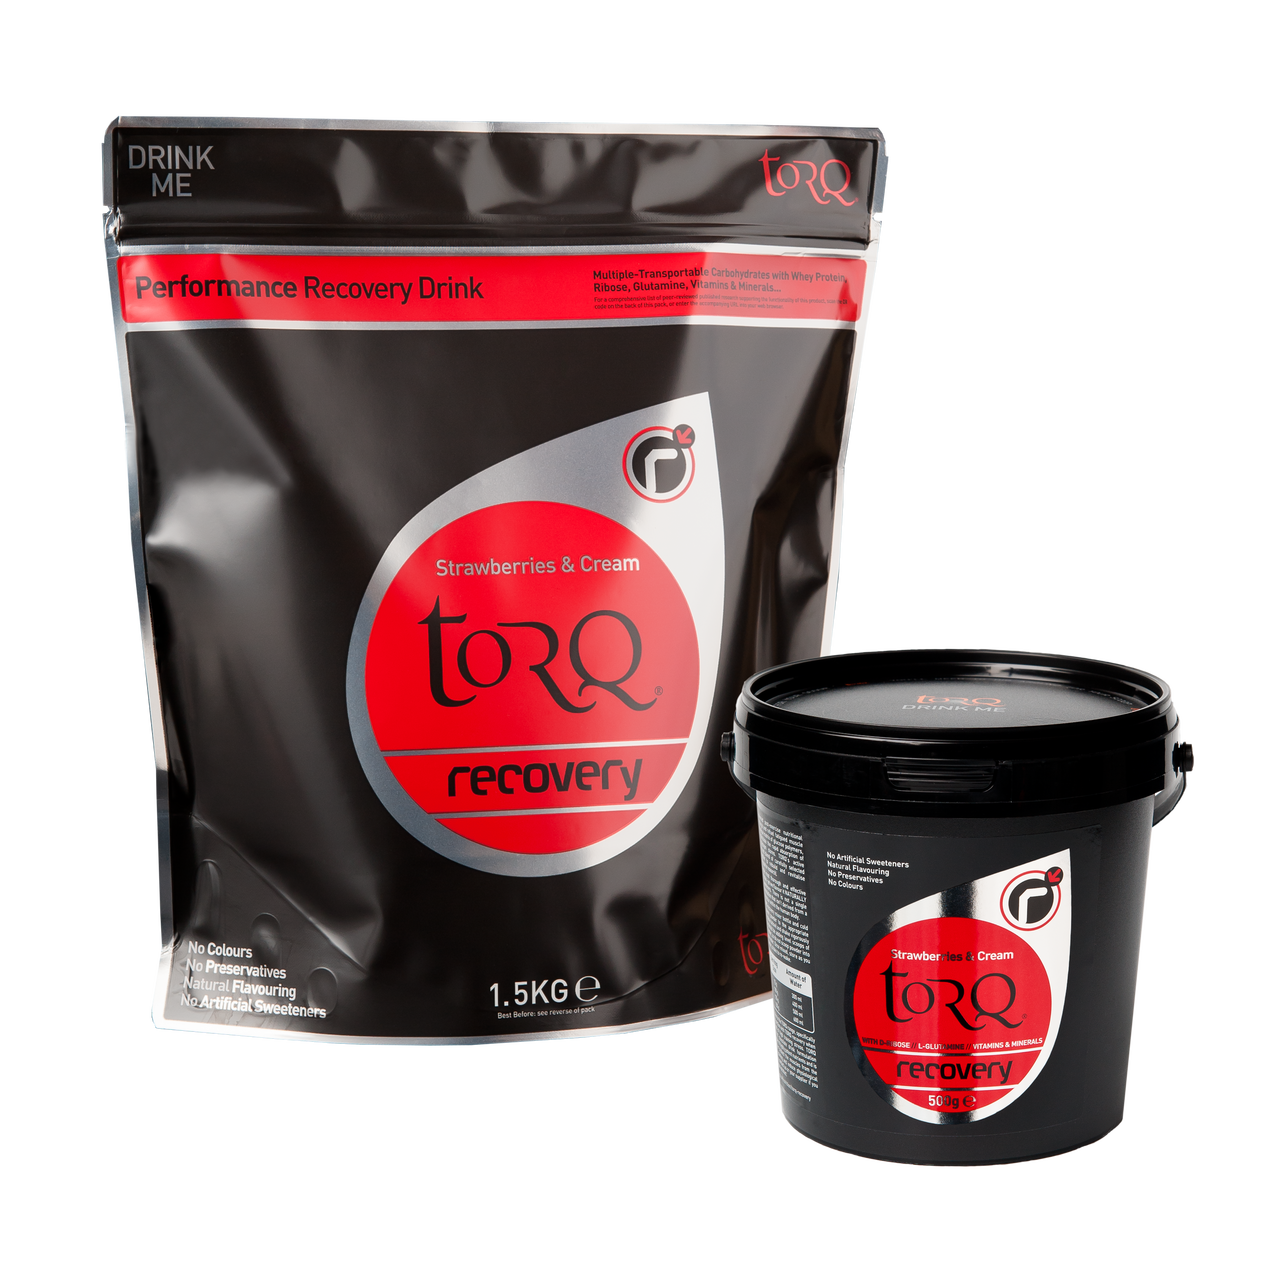 TORQ Recovery - Strawberries & Cream